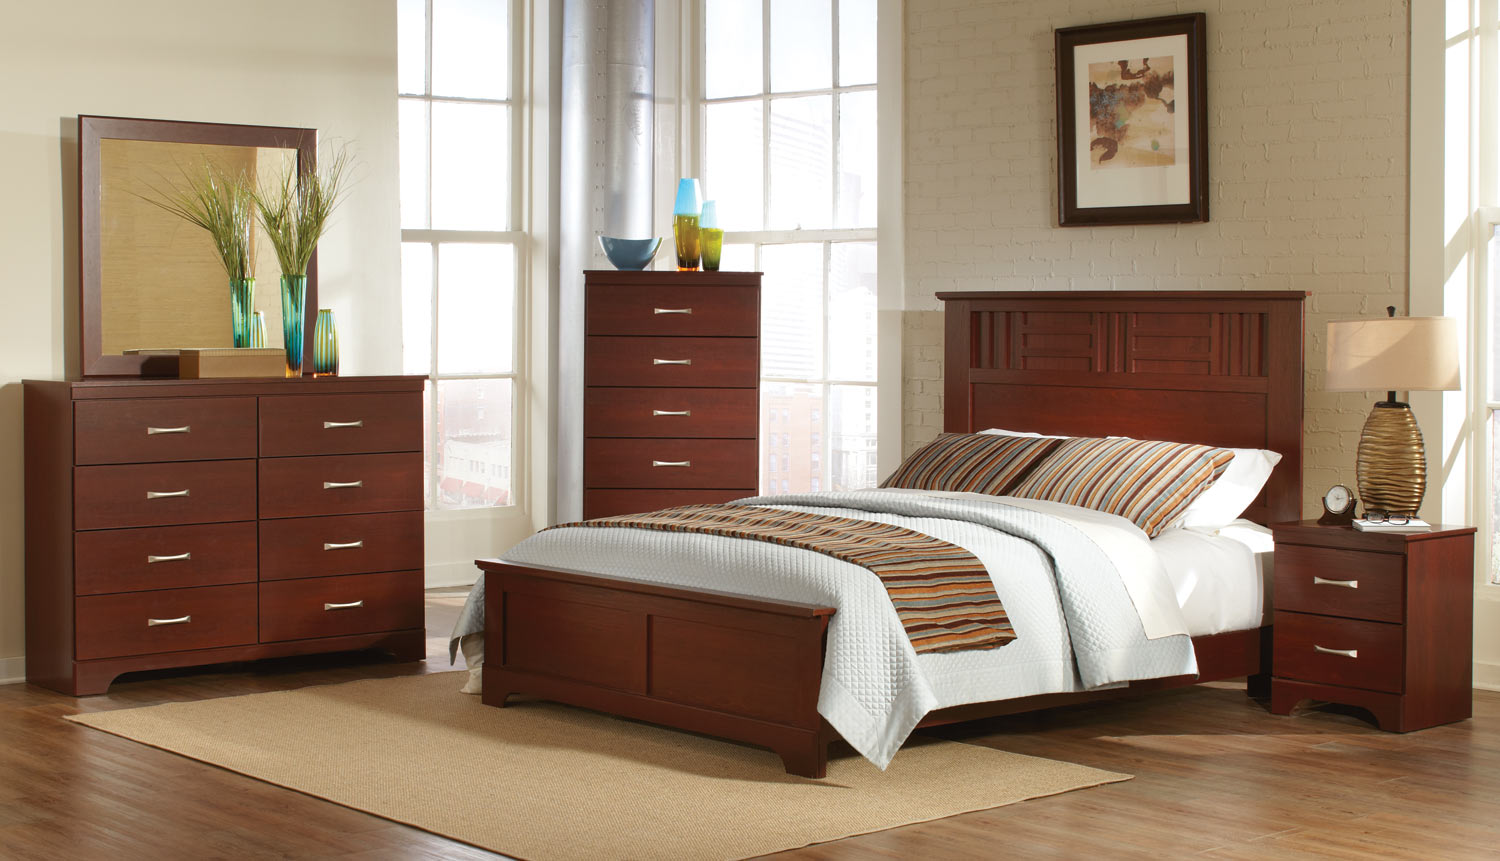 Kith Furniture Moro Bedroom Set